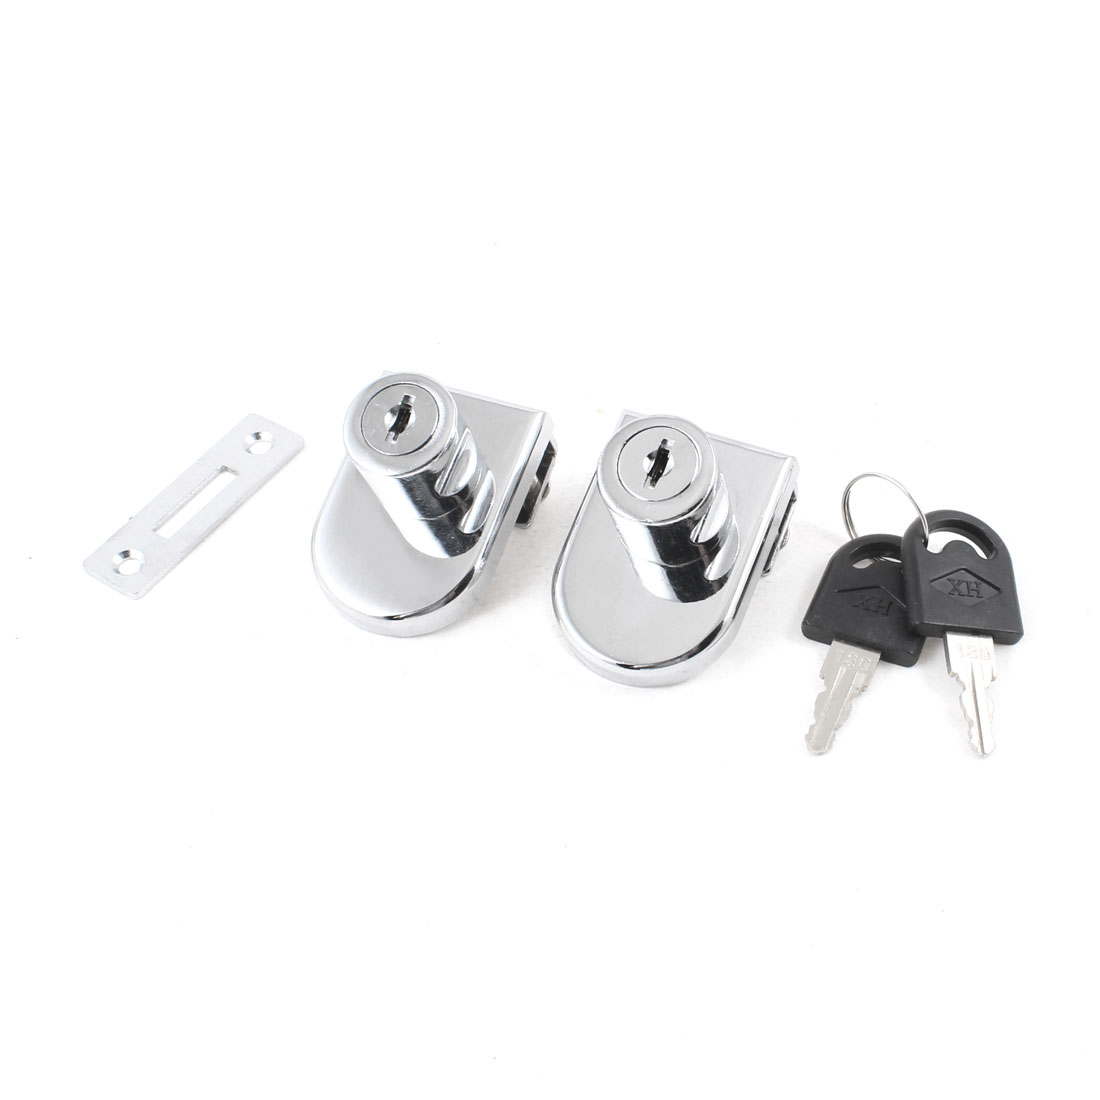 2pcs Showcase Display Cabinet Glass Door Lock Replacement + Keys